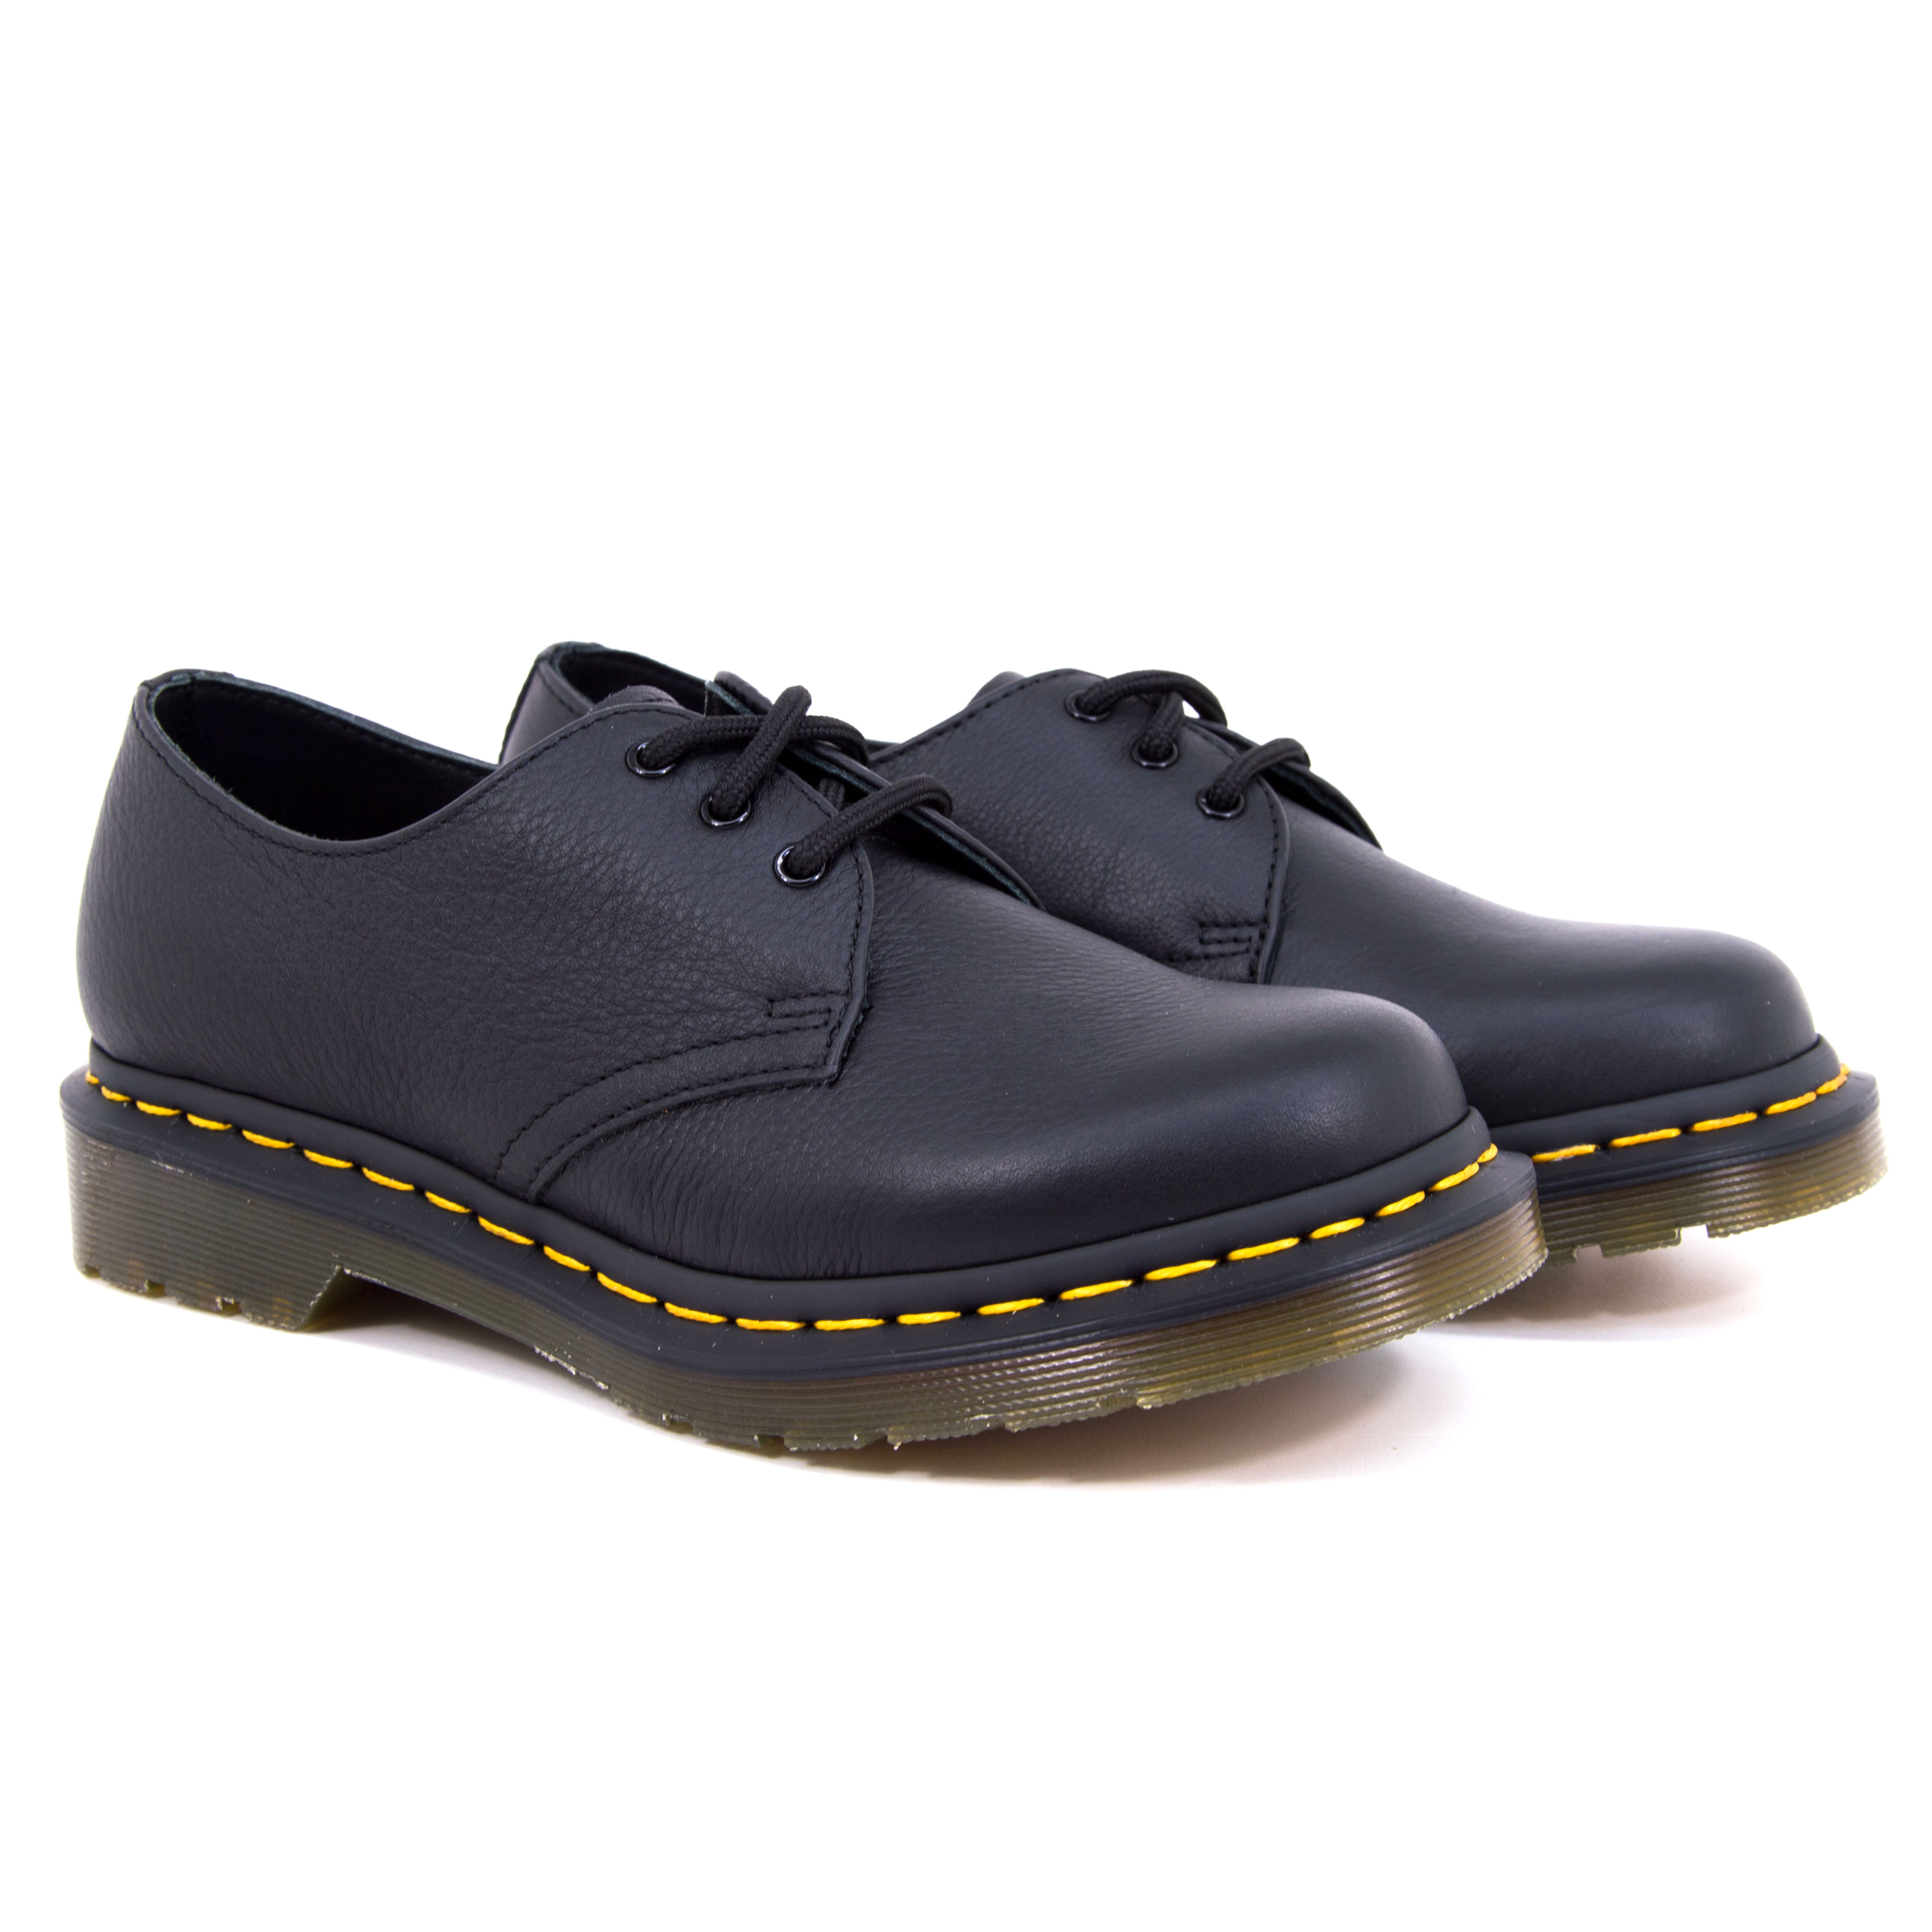 Dr. Martens - 1461 - Black Virginia